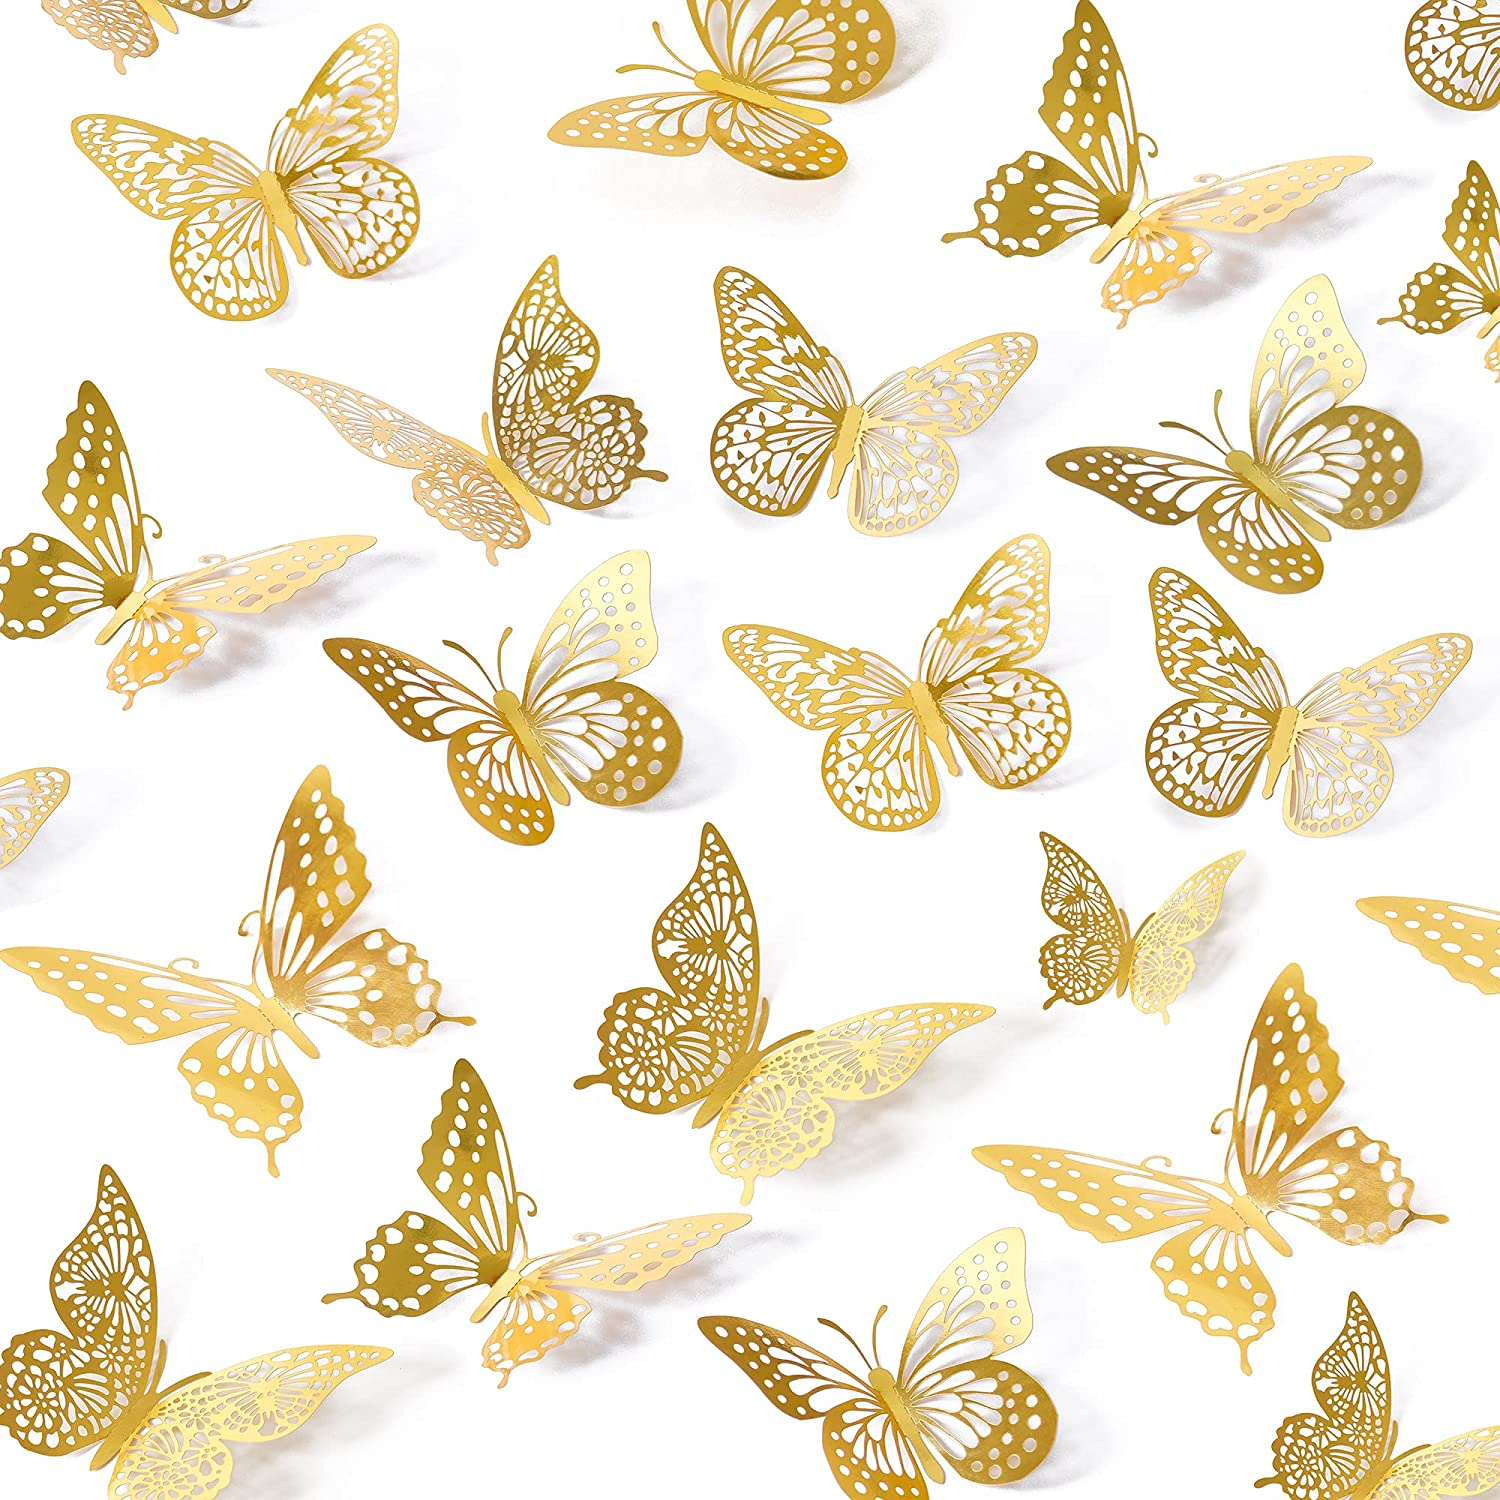 3D Butterfly Wall Stickers, 48 Pcs 4 Styles 3 Sizes, Removable Metallic Wall Sticker Room Mural Decals Decoration for Kids Bedroom Nursery Classroom Party Wedding Decor DIY Gift (Gold)